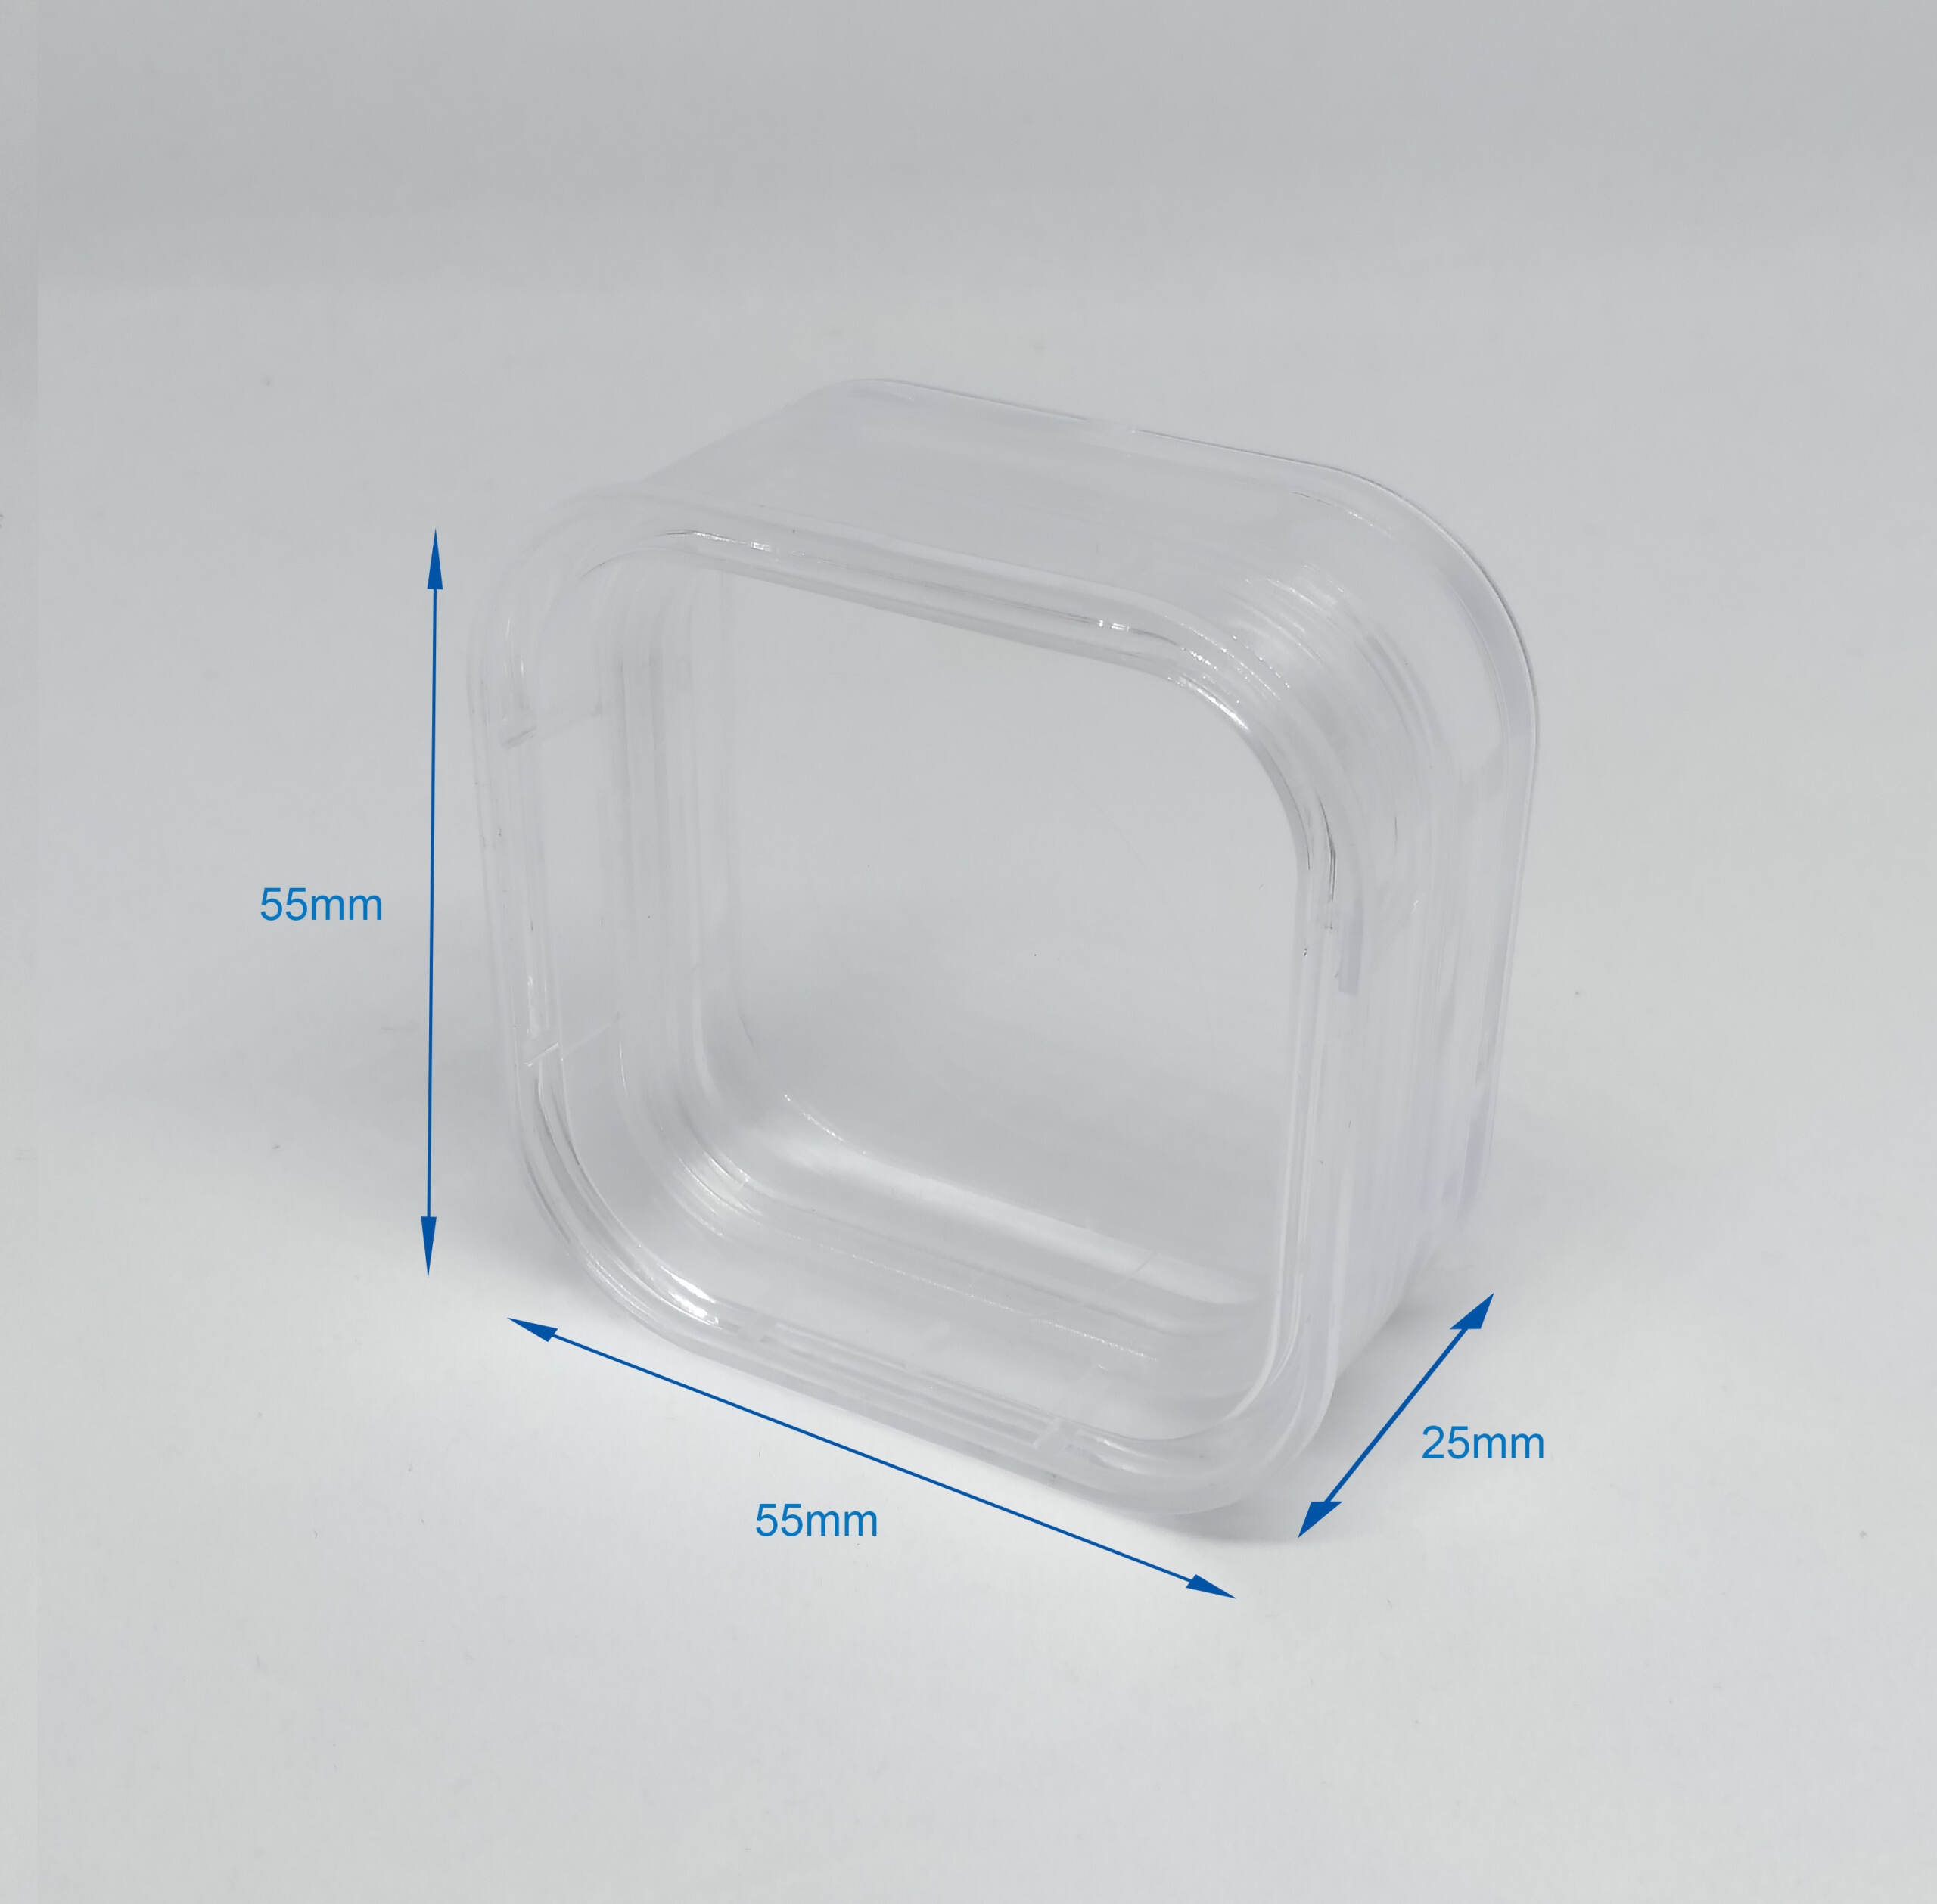 Gel-Pak Membrane Box 55 55 25mm Dimension Stock